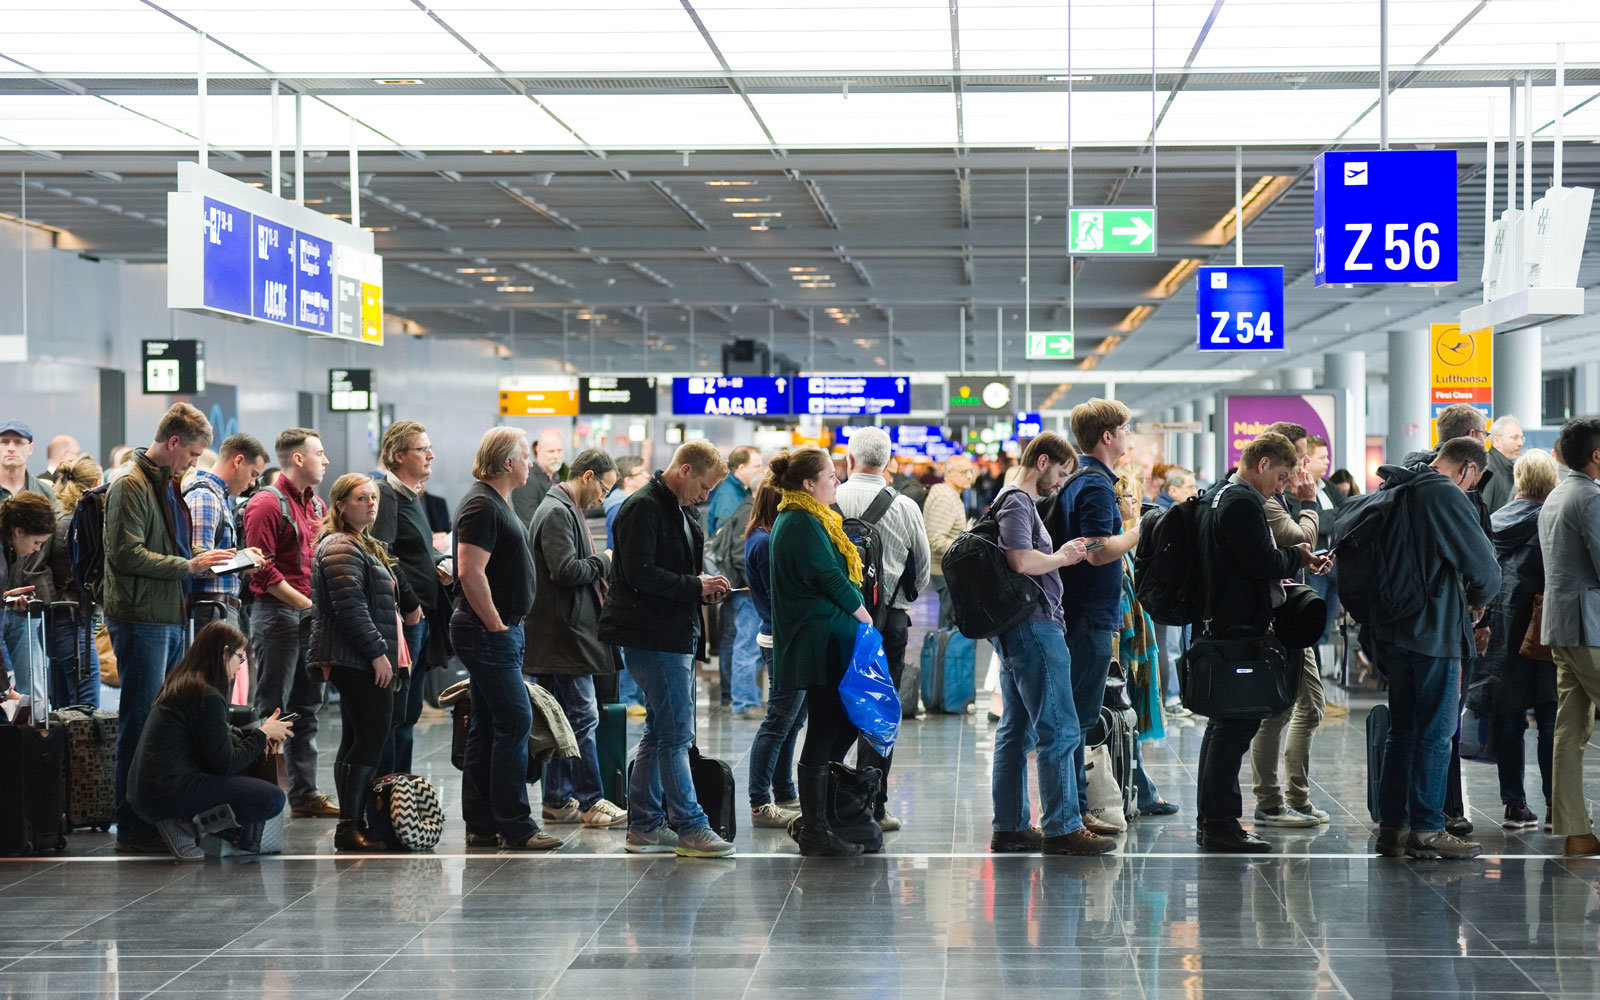 British Airways New Boarding Policy Is Causing Backlash